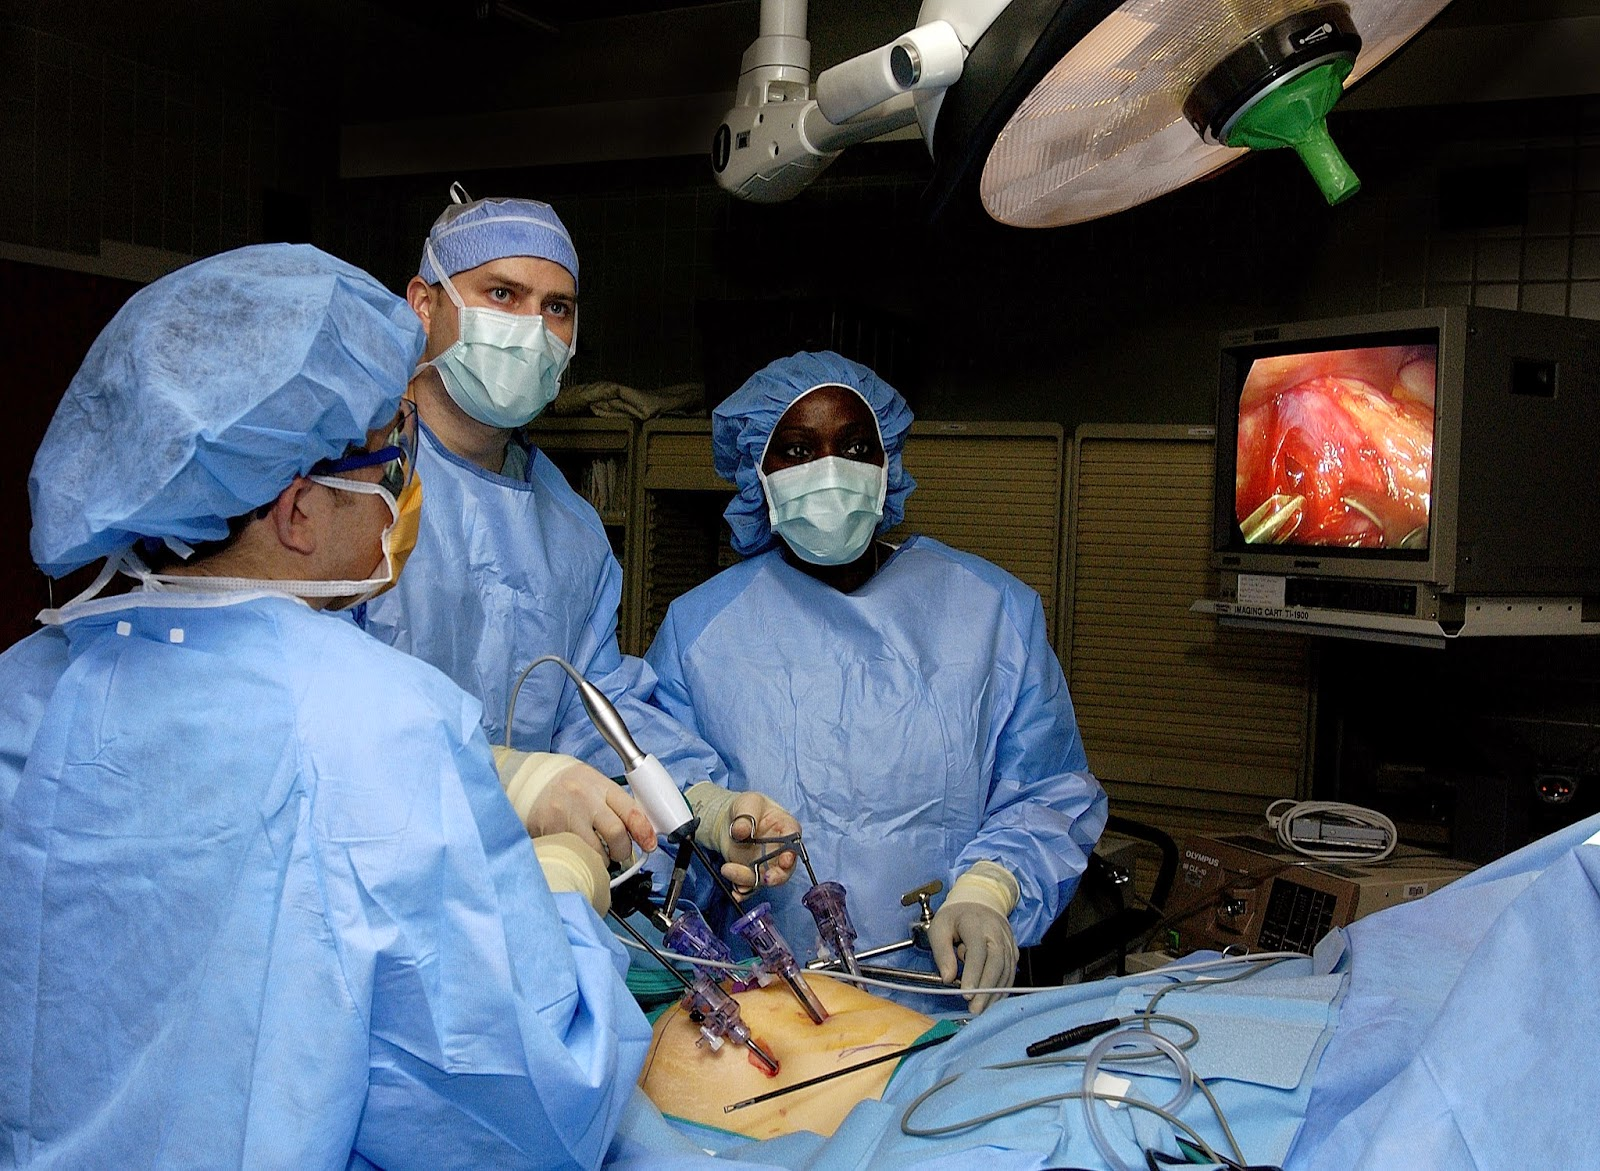 Surgeons performing bariatric surgery to a patient.